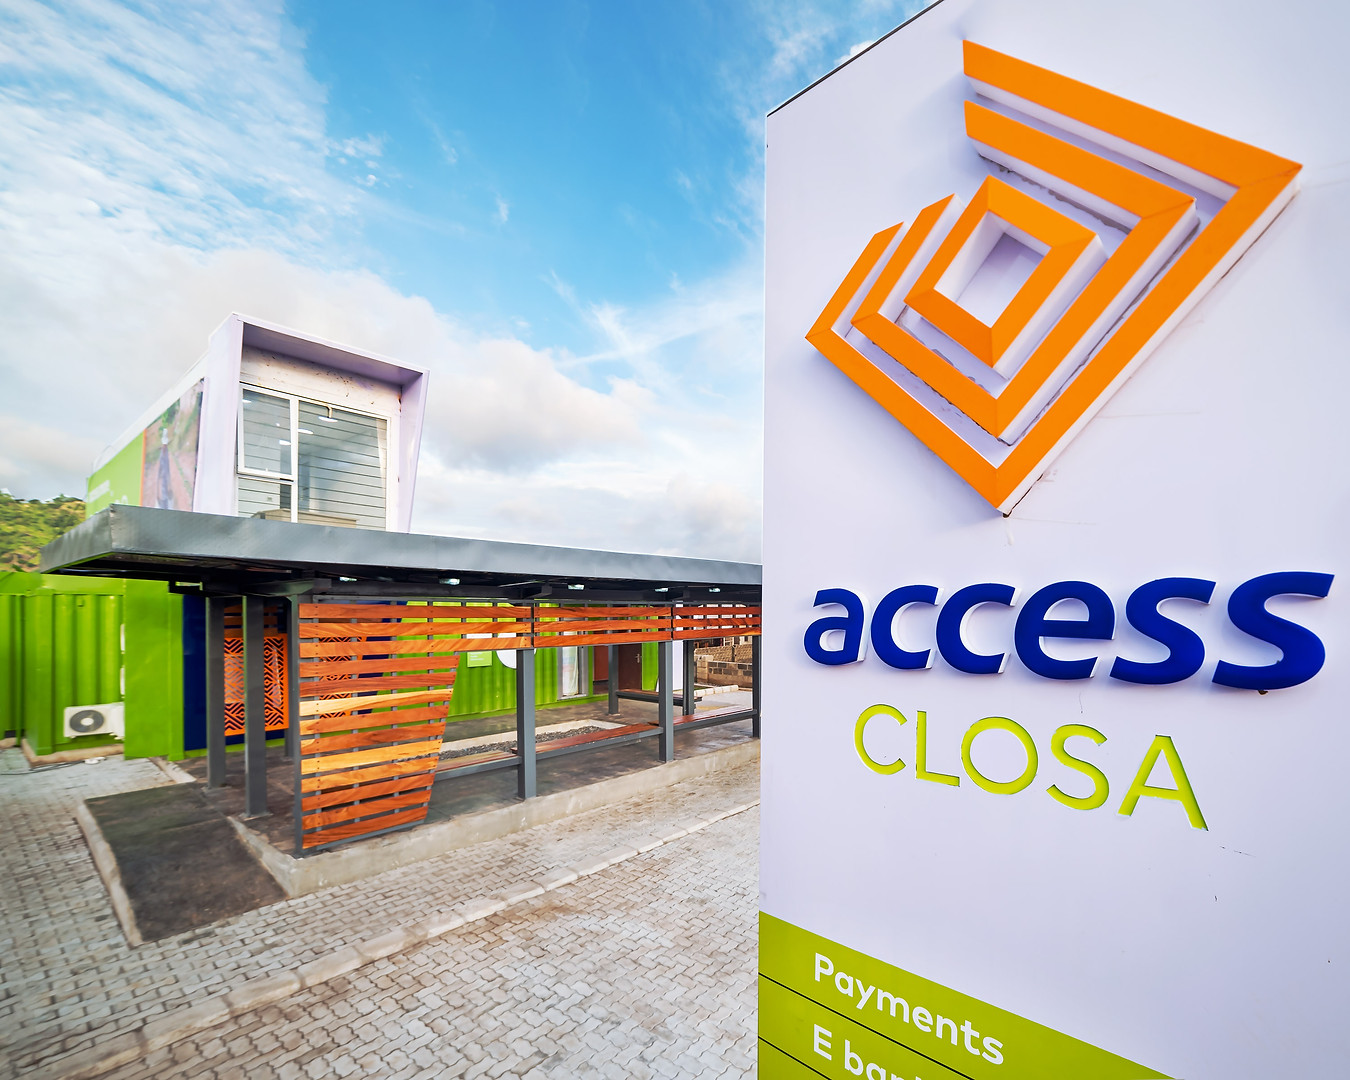 A For Aesthetics_Access Bank Closa_02.jp